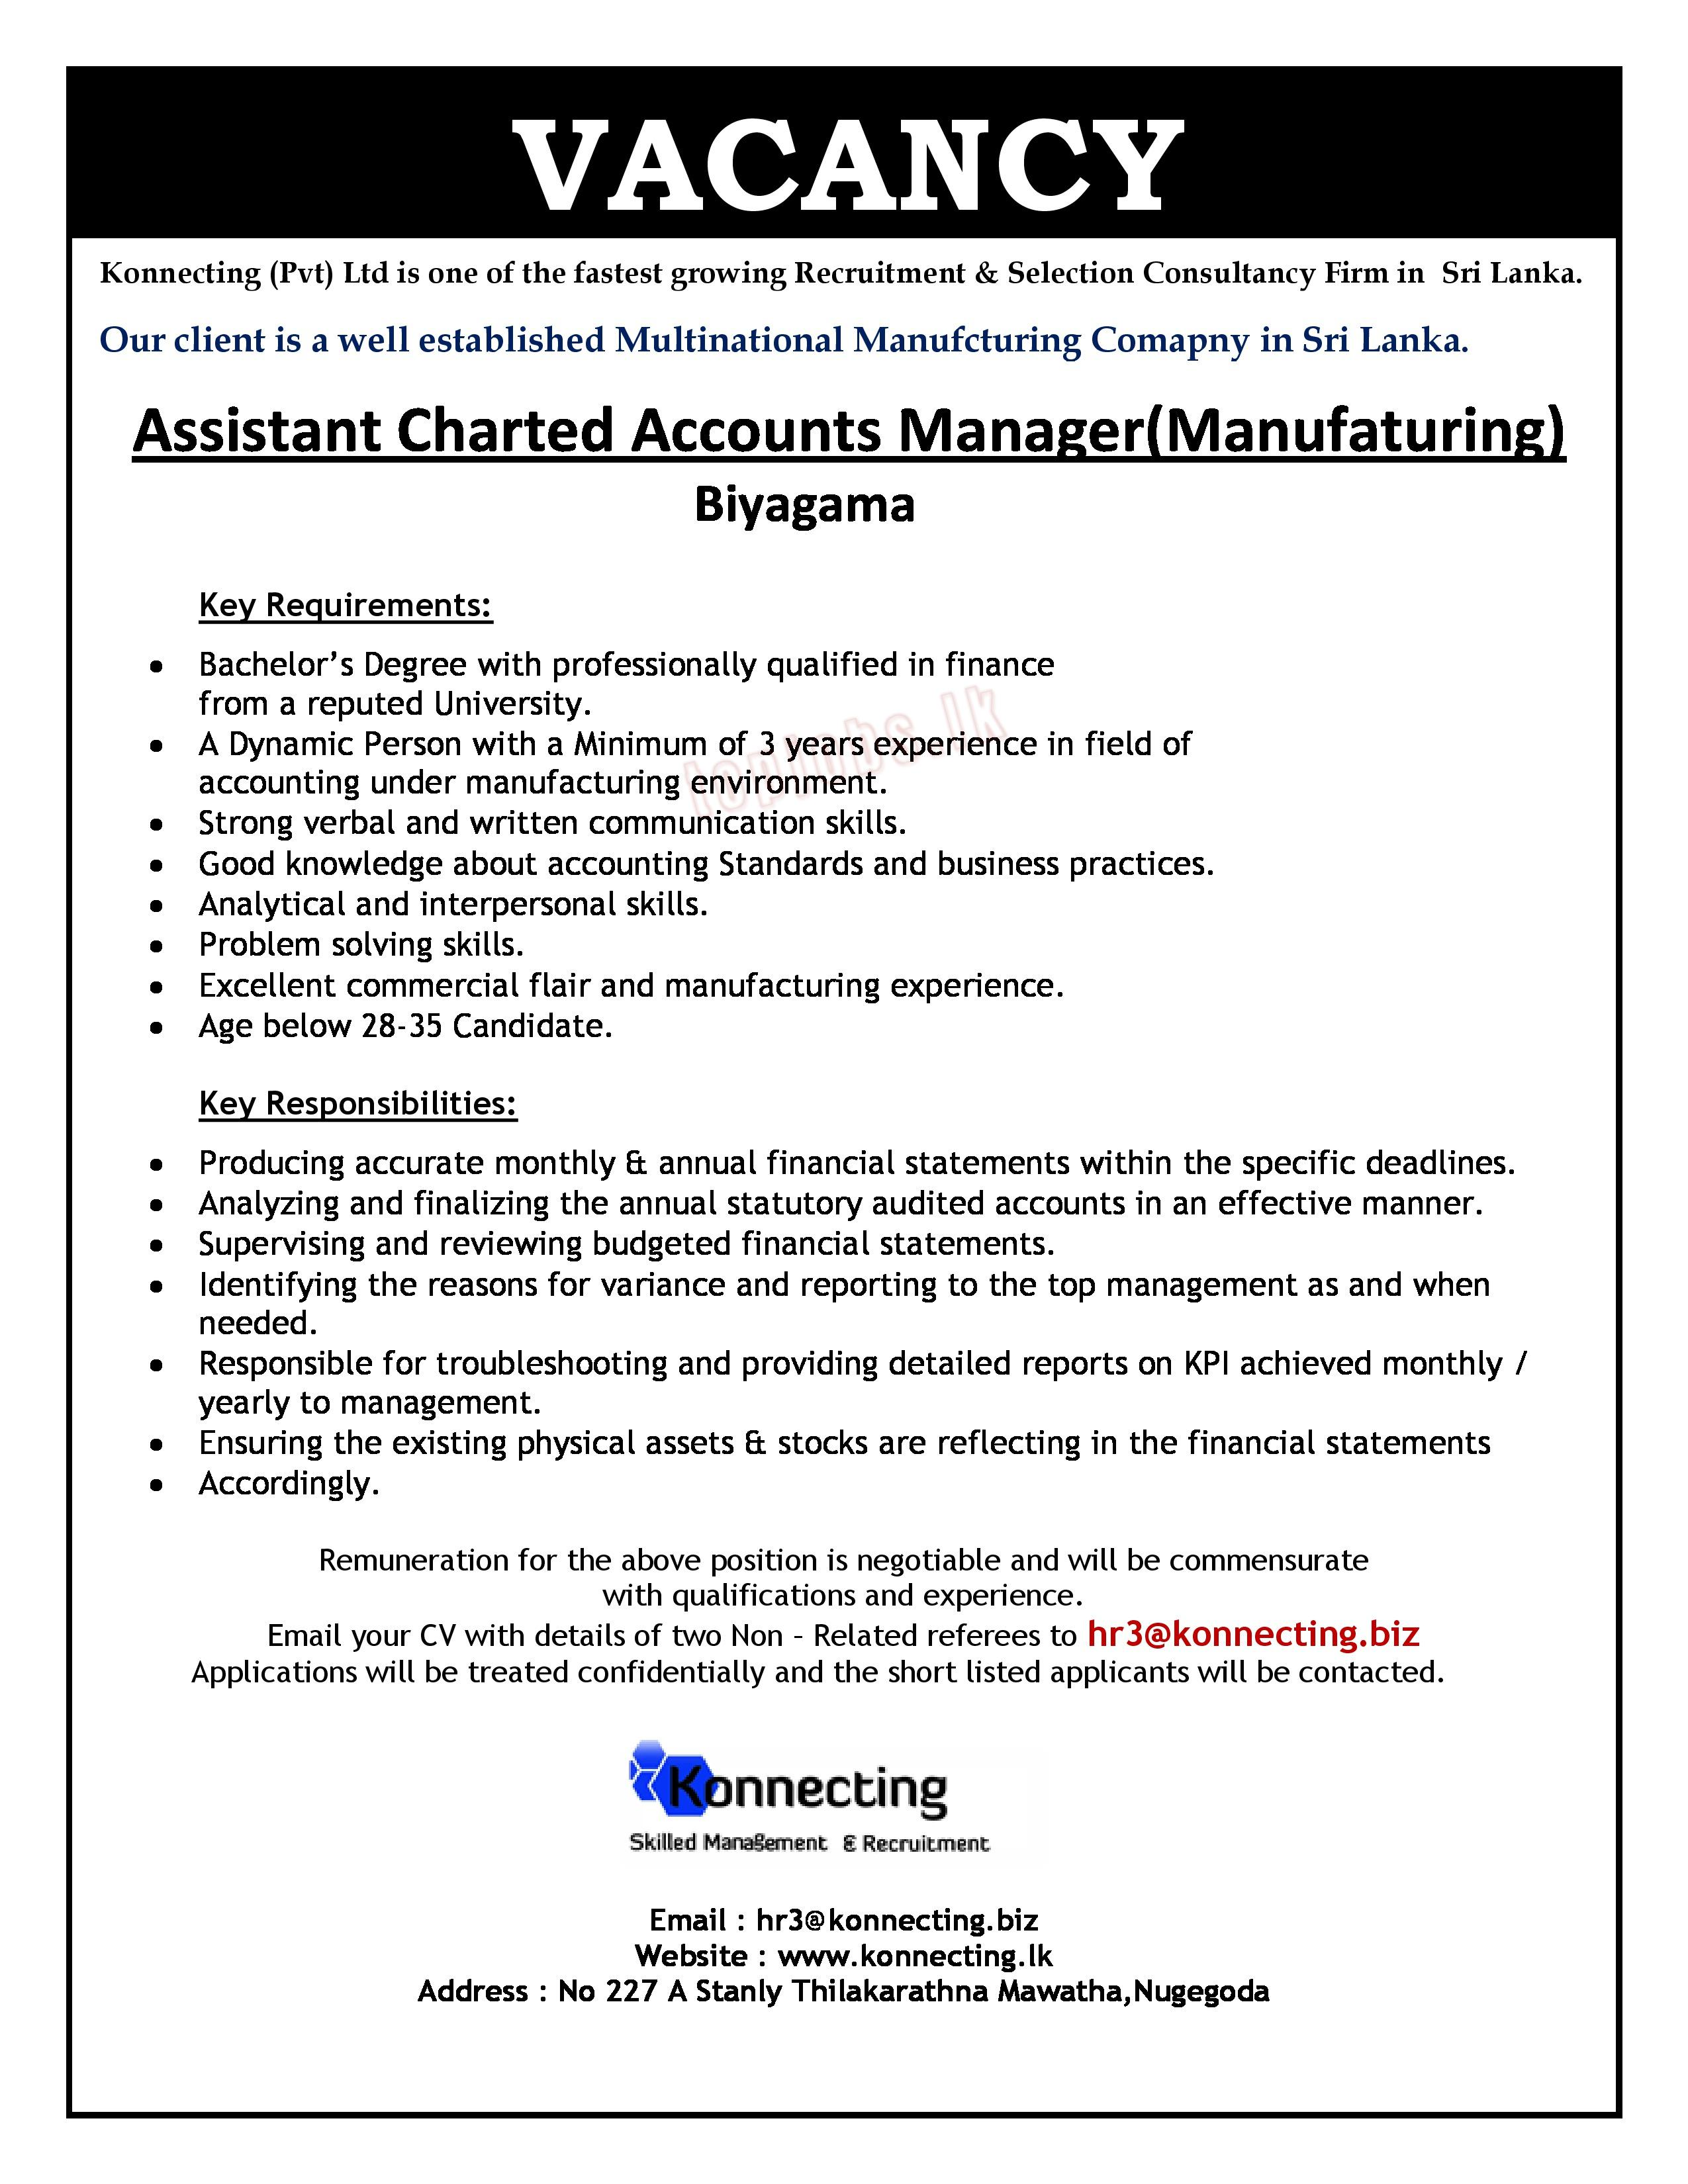 vacancy advertisement assistant charted accounts manager manufaturing biyagama